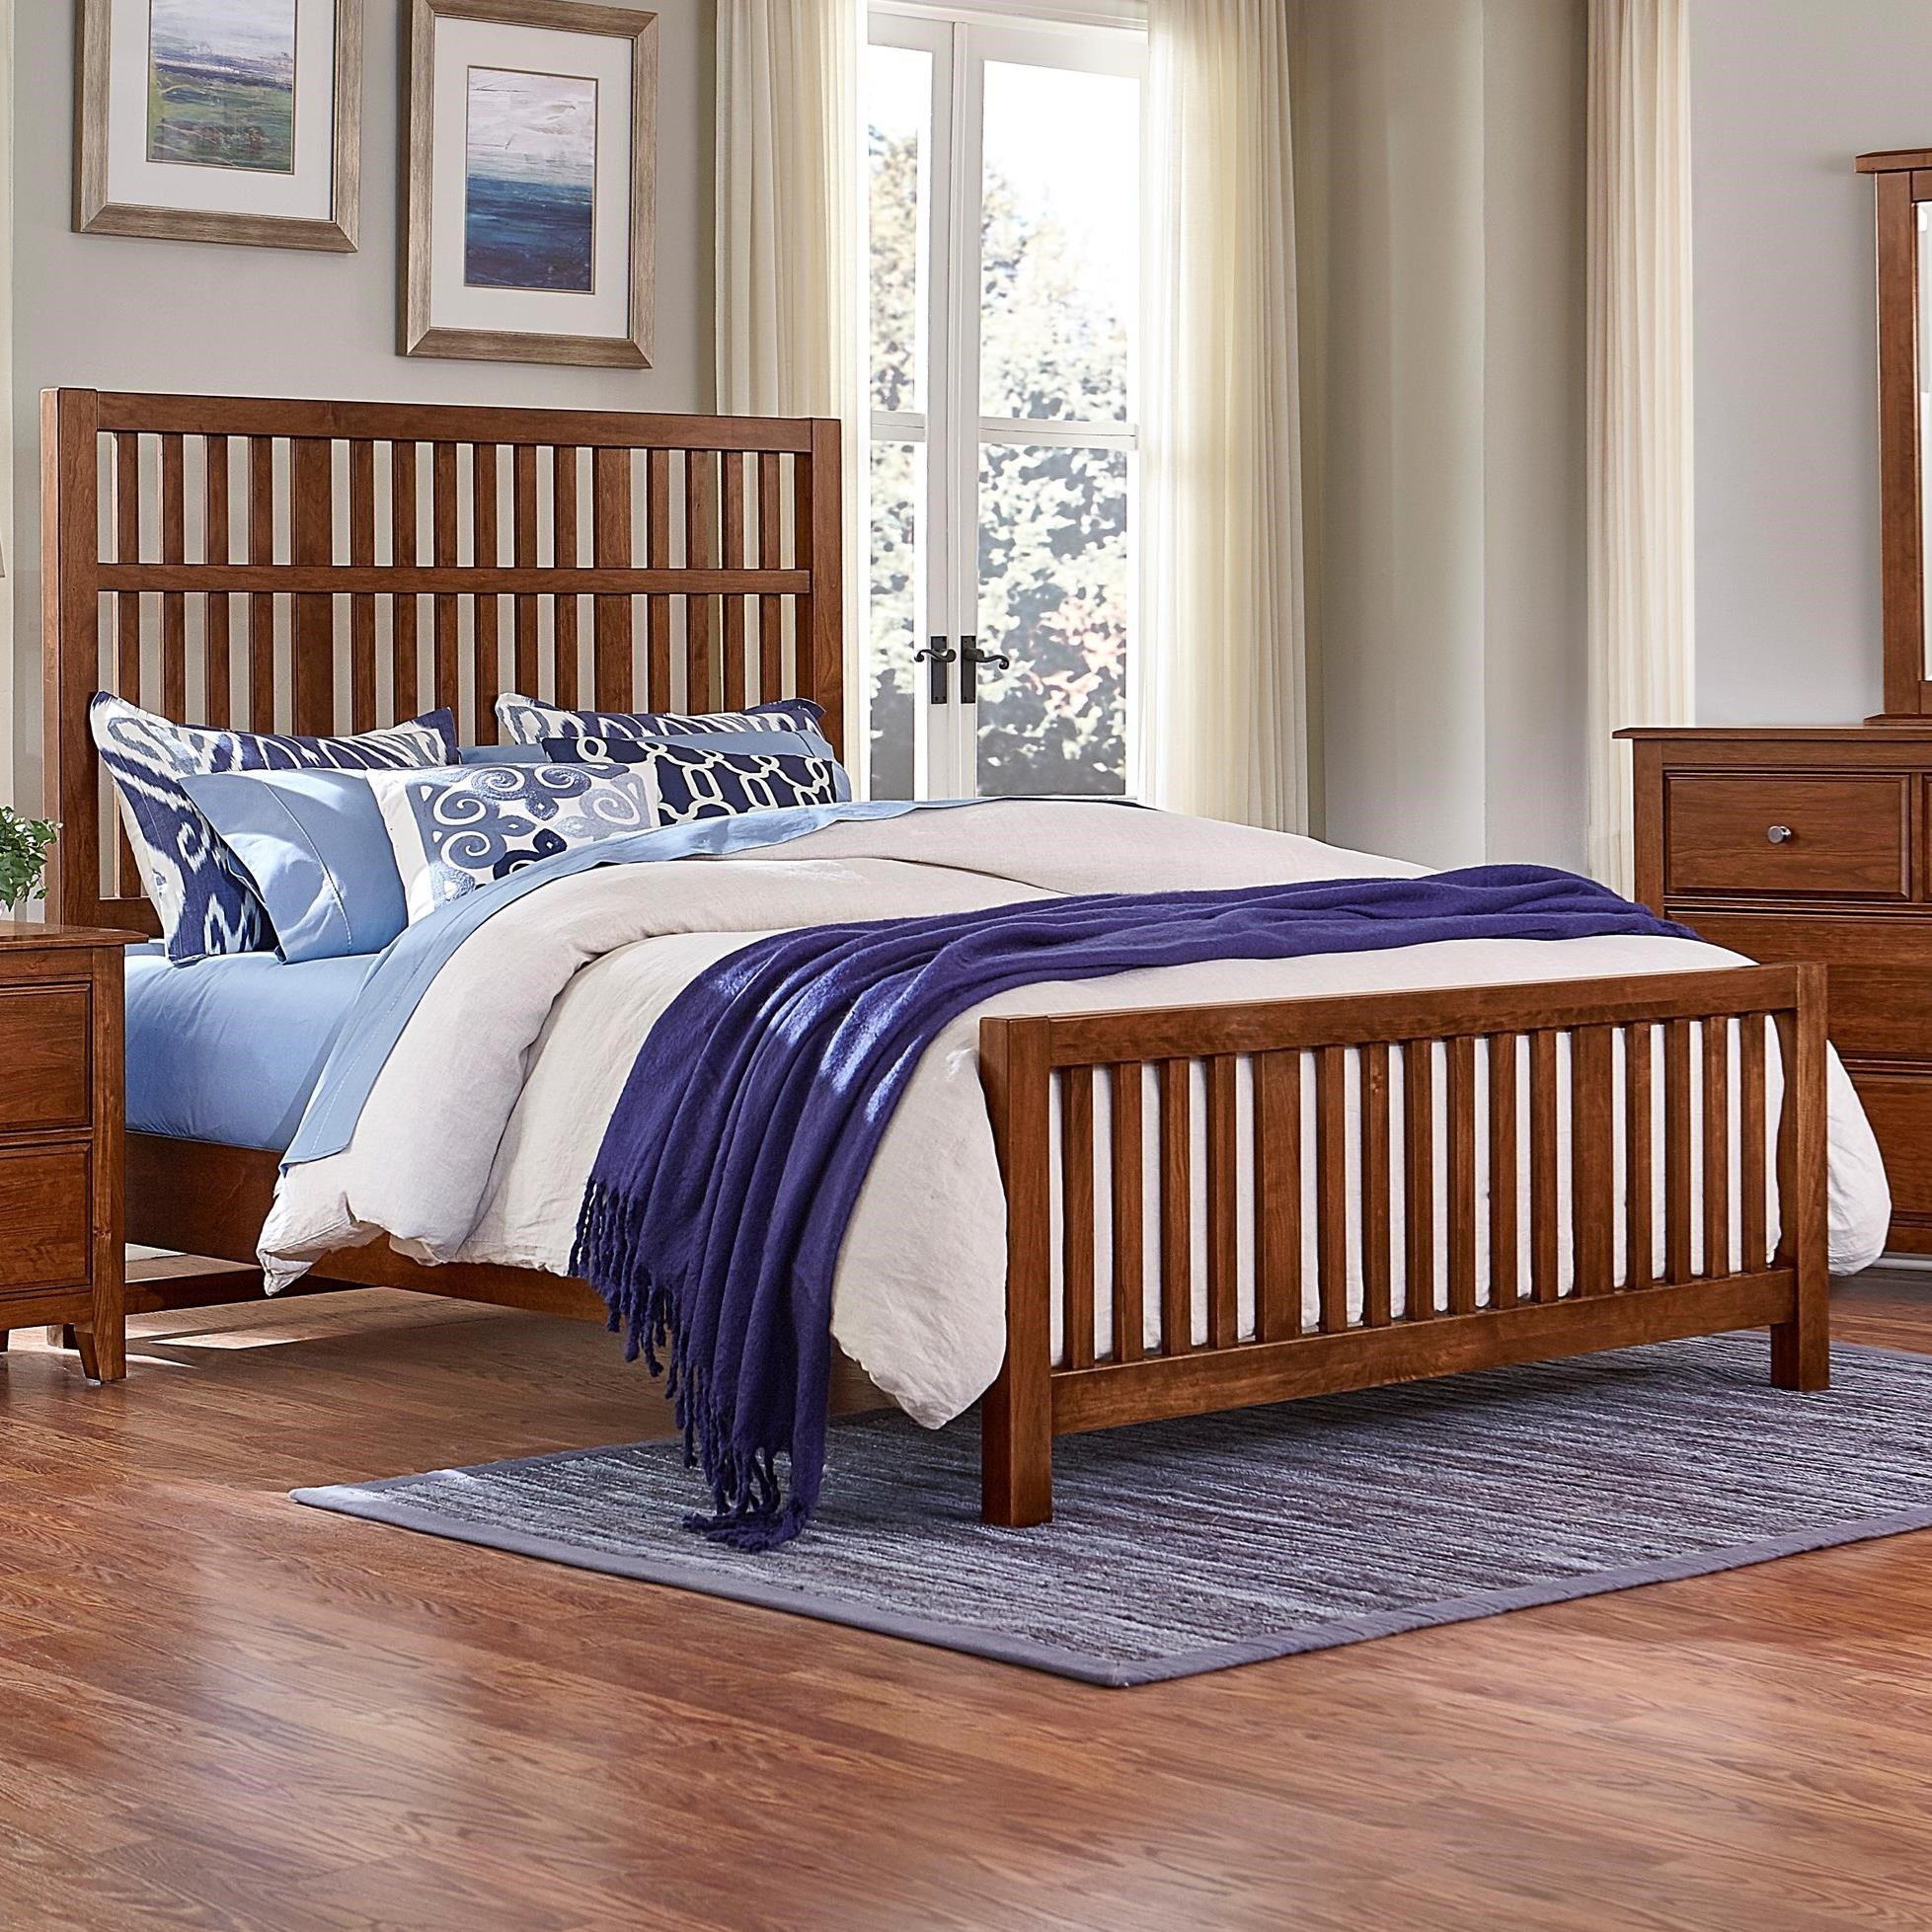 Queen Craftsman Slat Bed